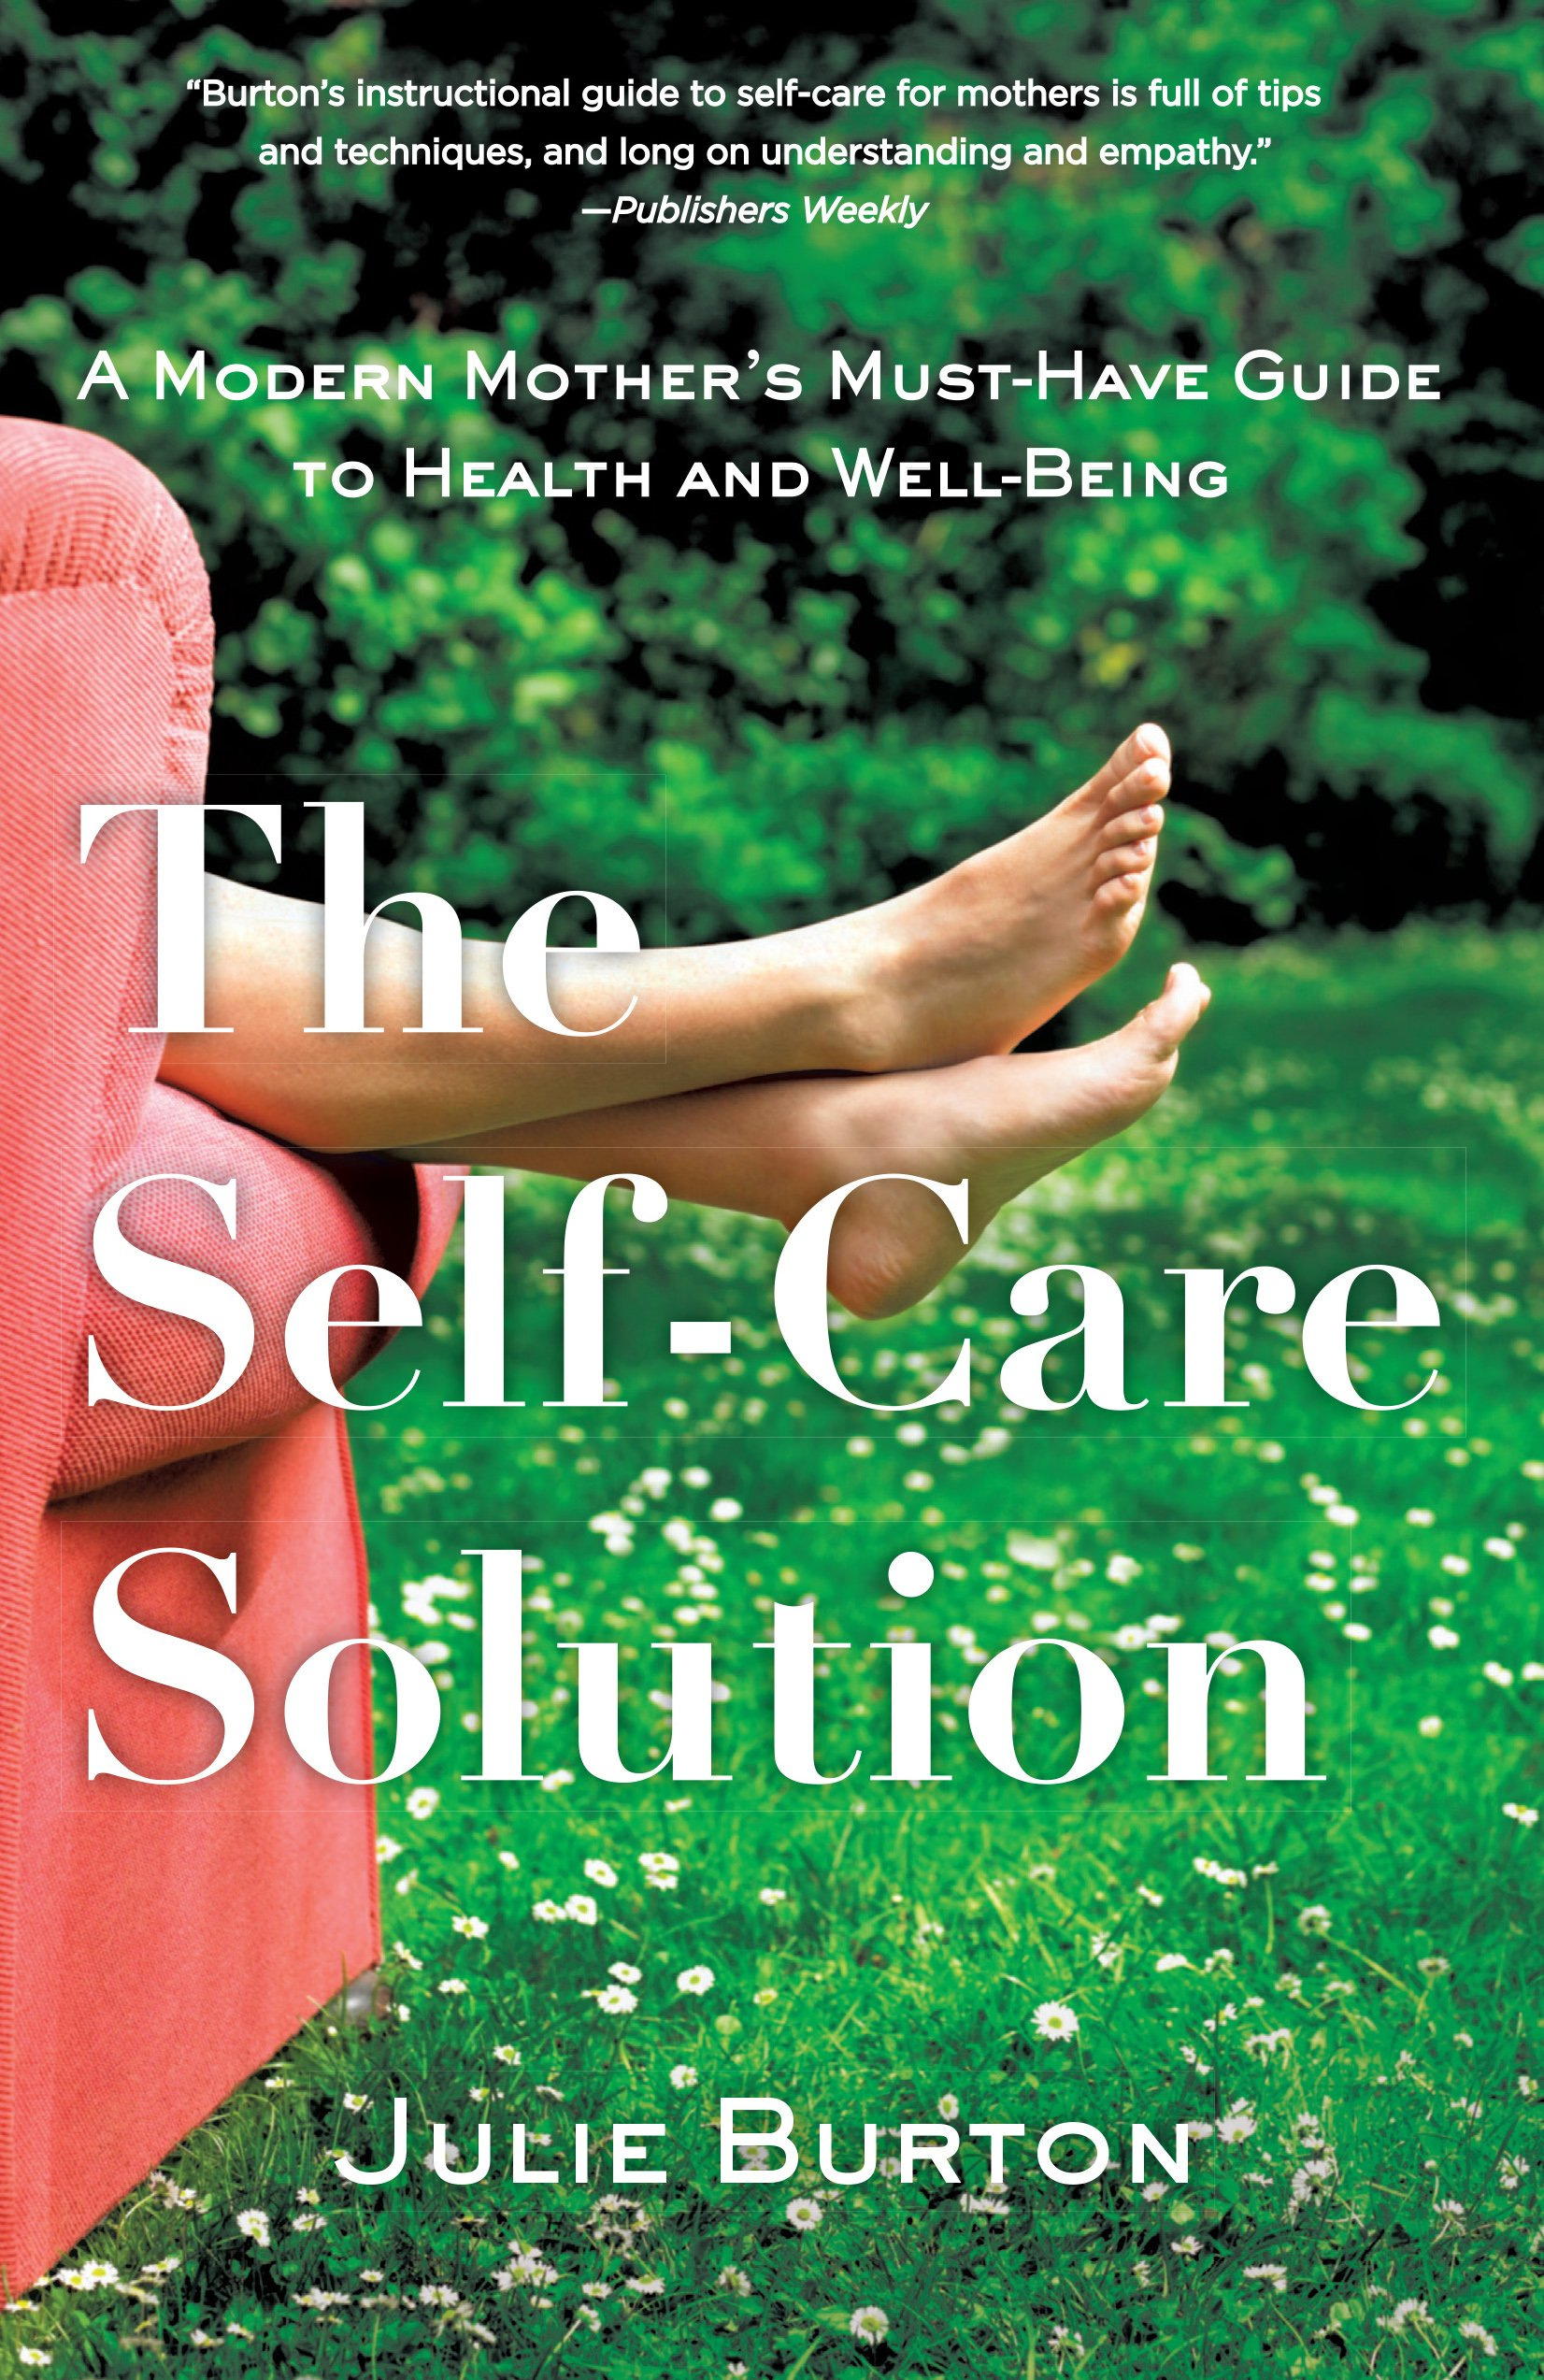 Best Books For Mothers - The Self-Care Solution by Julie Burton